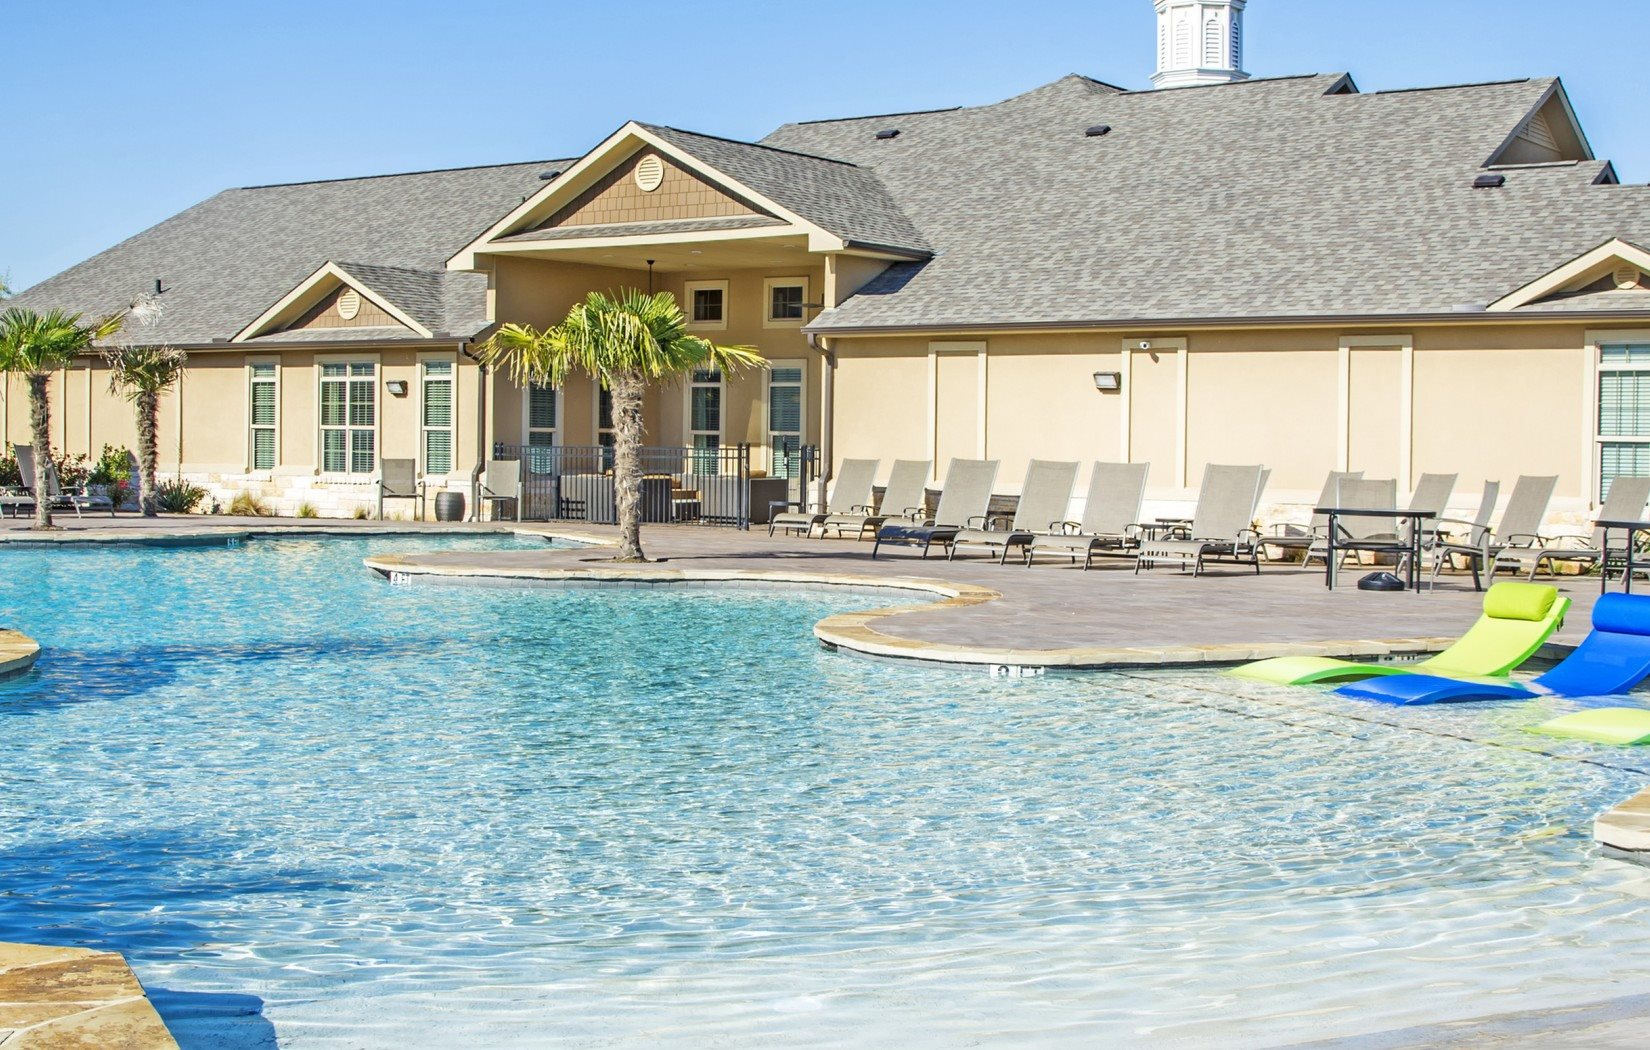 Resort-Inspired Salt Water Pool at Arrington Ridge, Round Rock, Texas